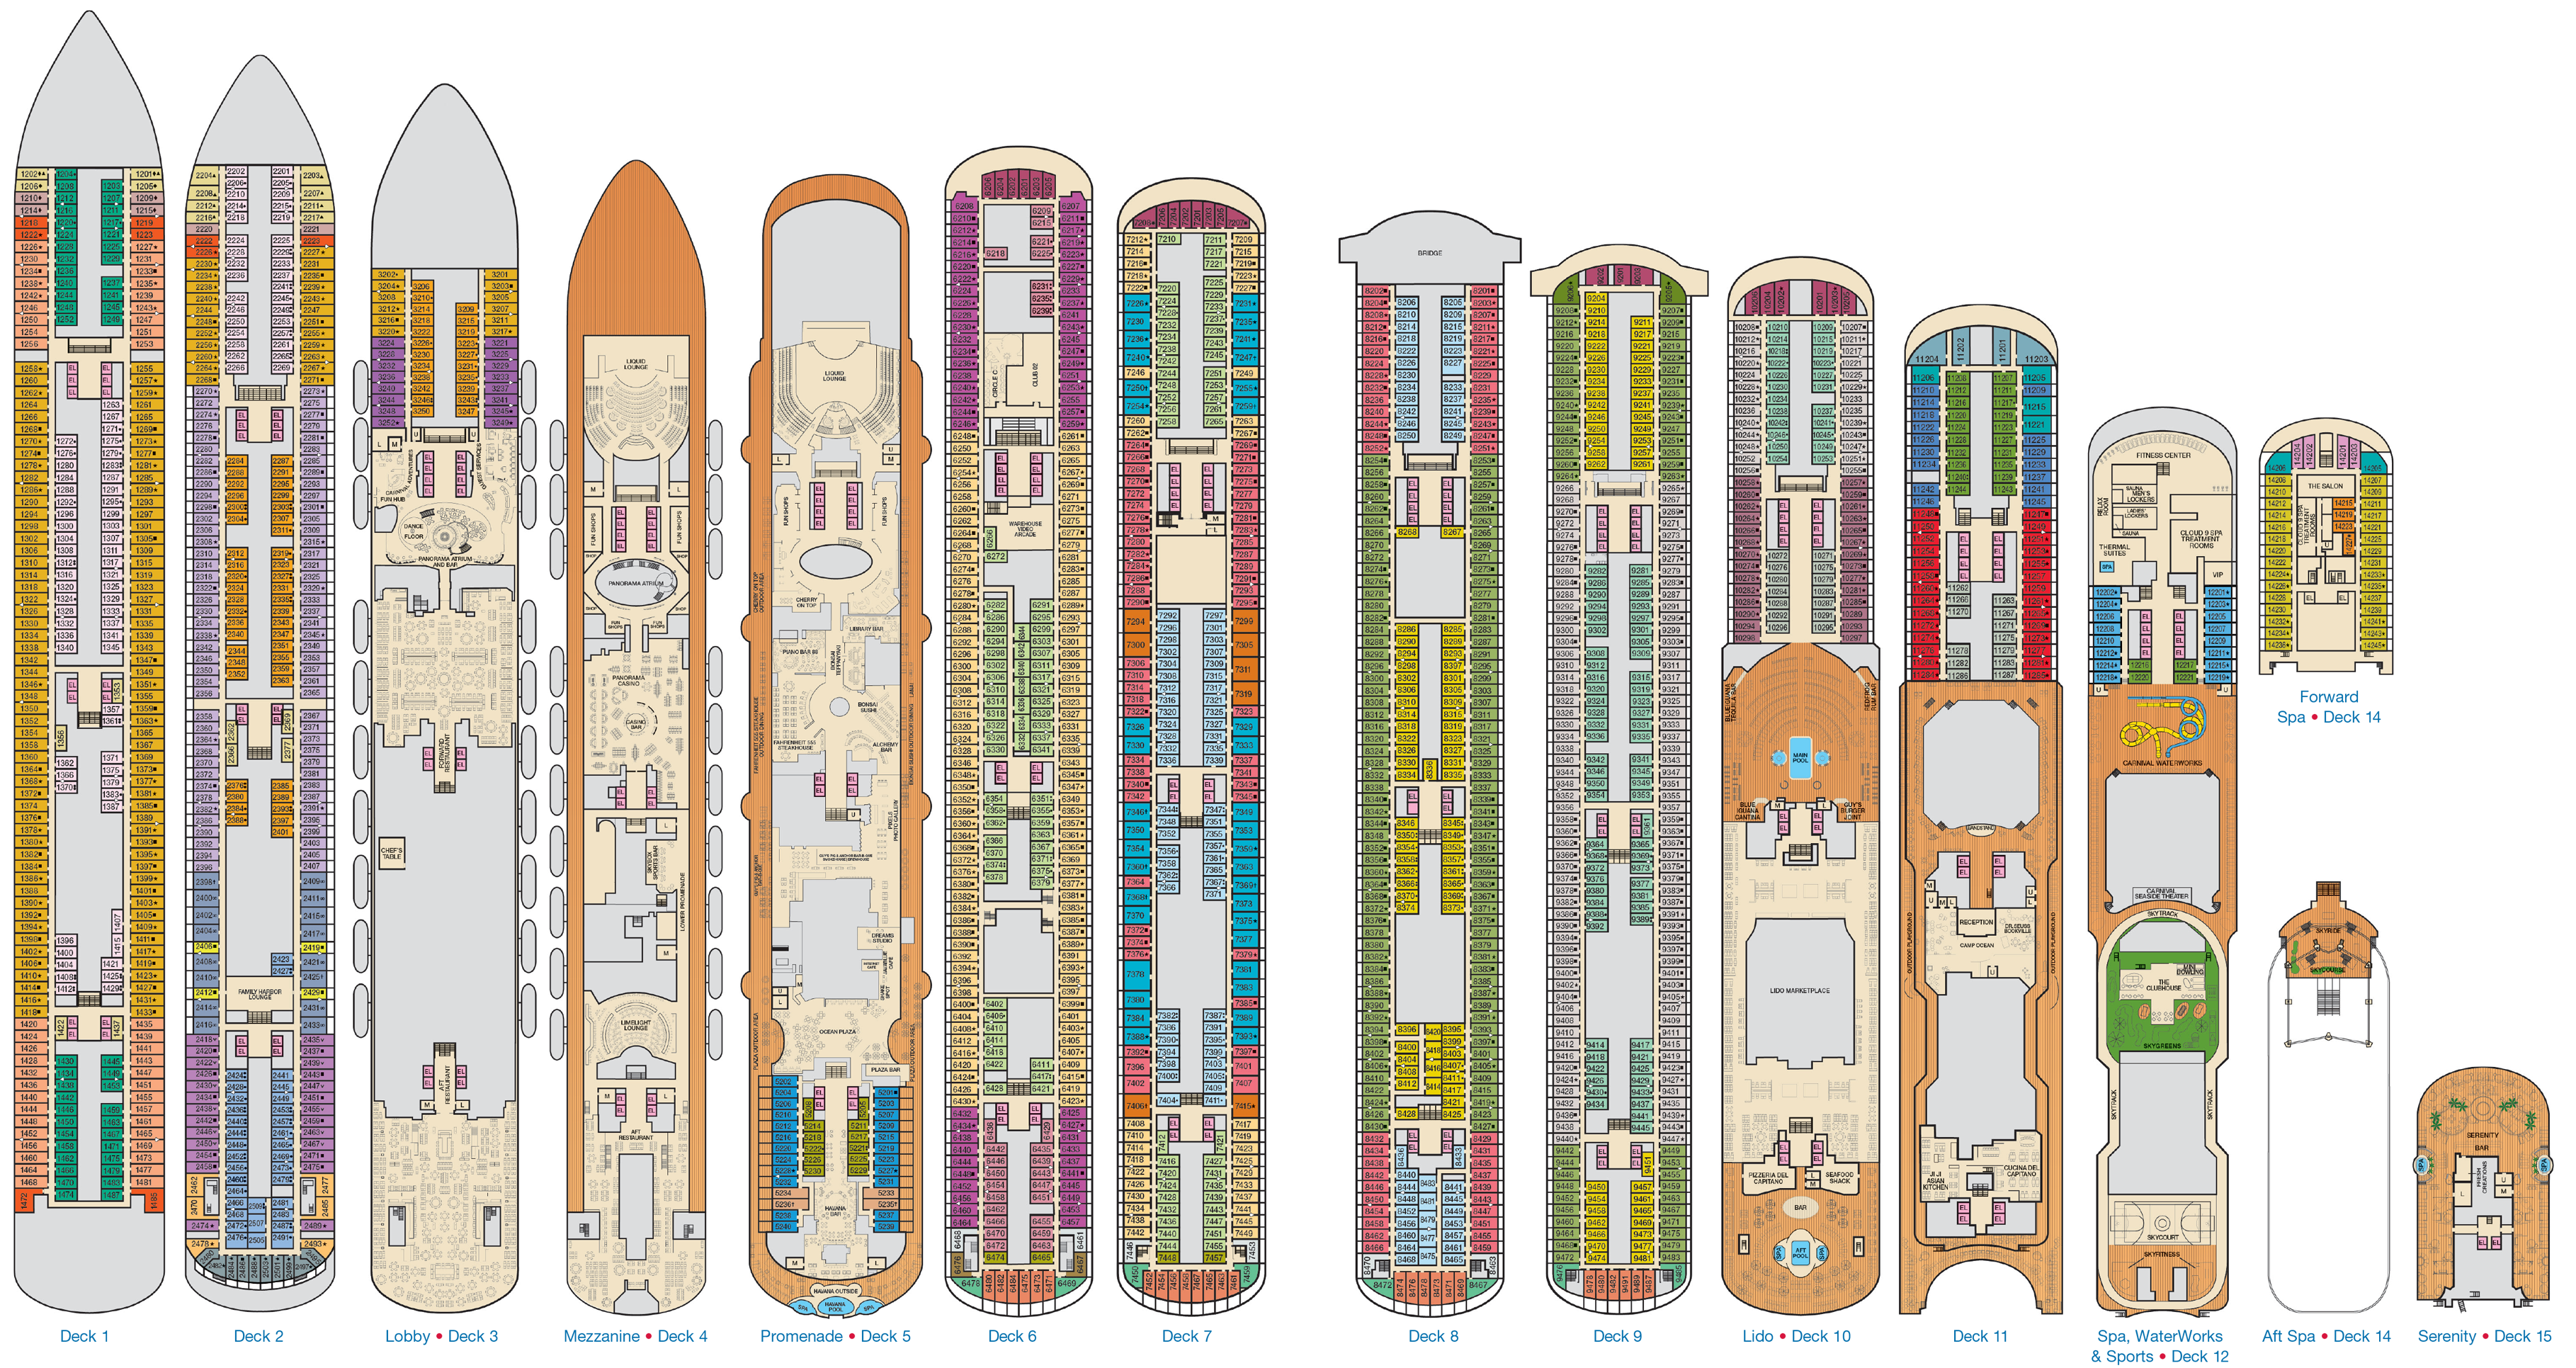 Skis drawing panorama. Carnival deck plans cruiseind